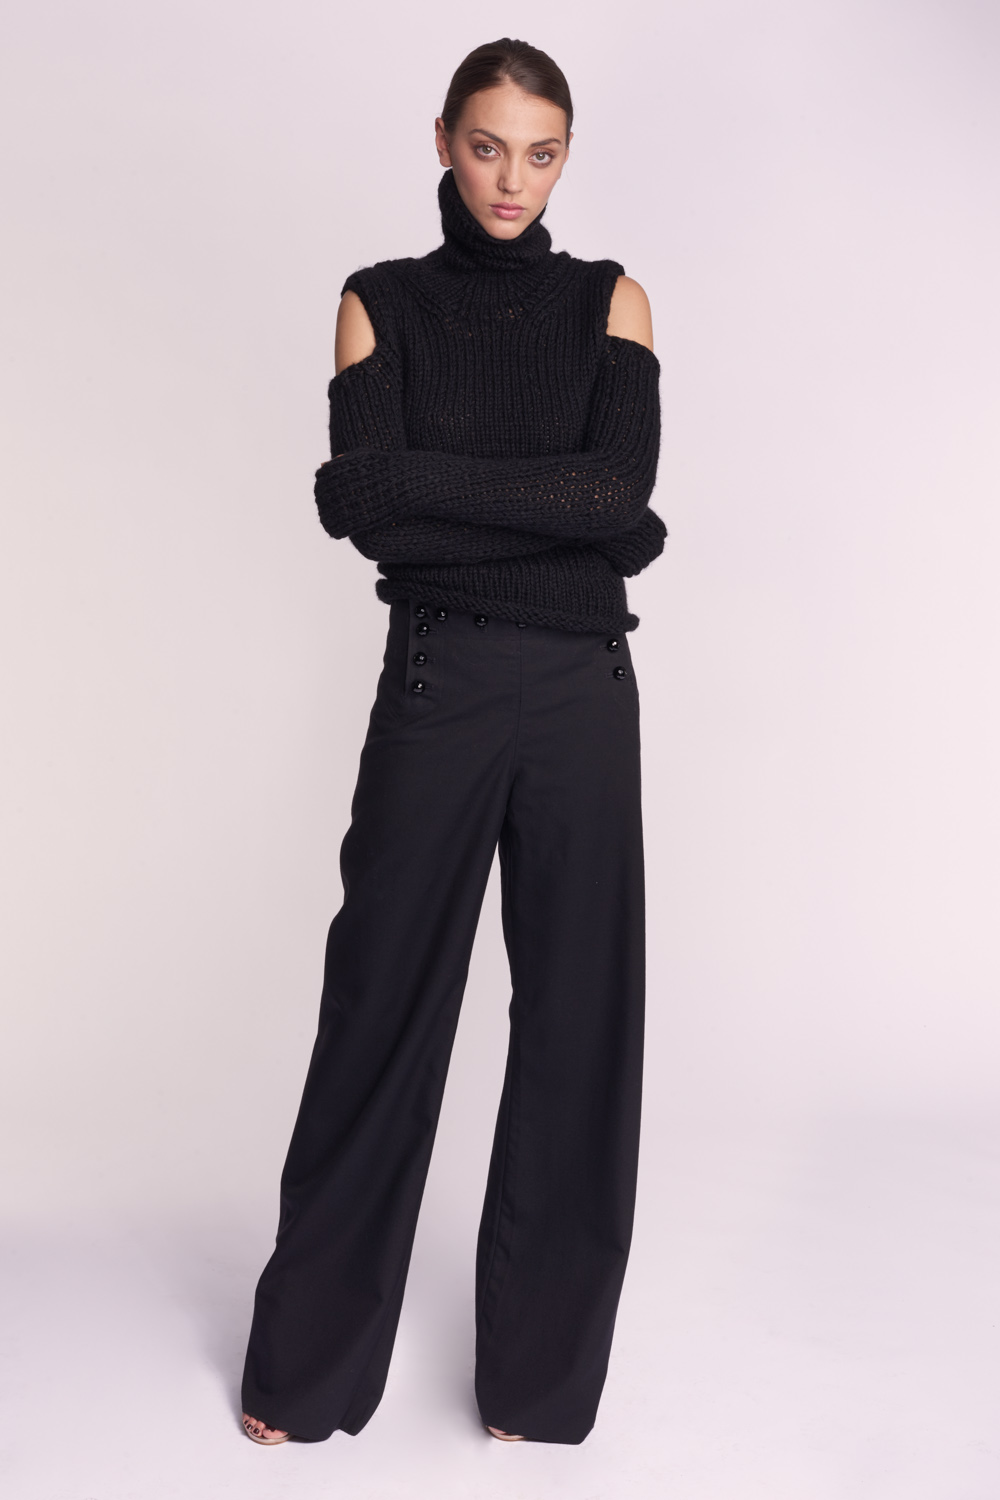 SV-RESORT 2016- LOOK 22.jpg